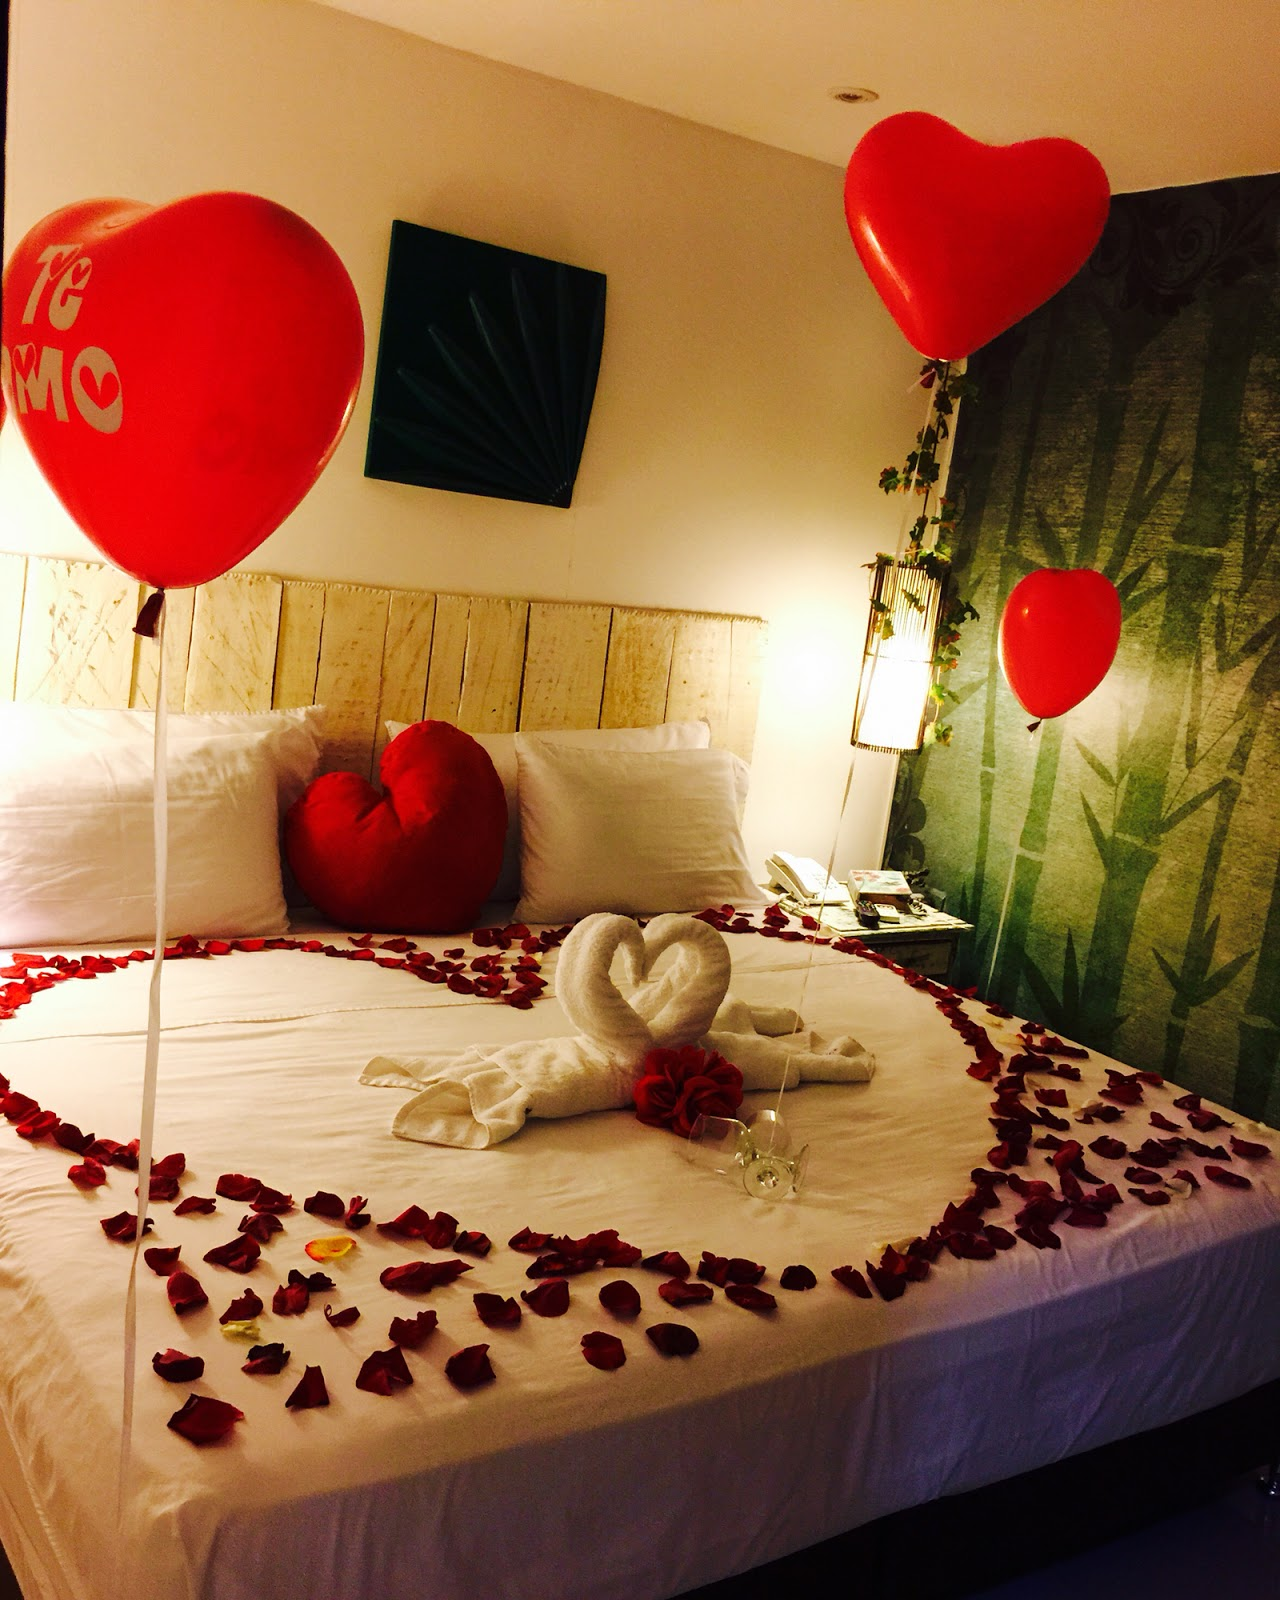 ImagesList.com: Bedroom Decoration For Valentine's Day 1